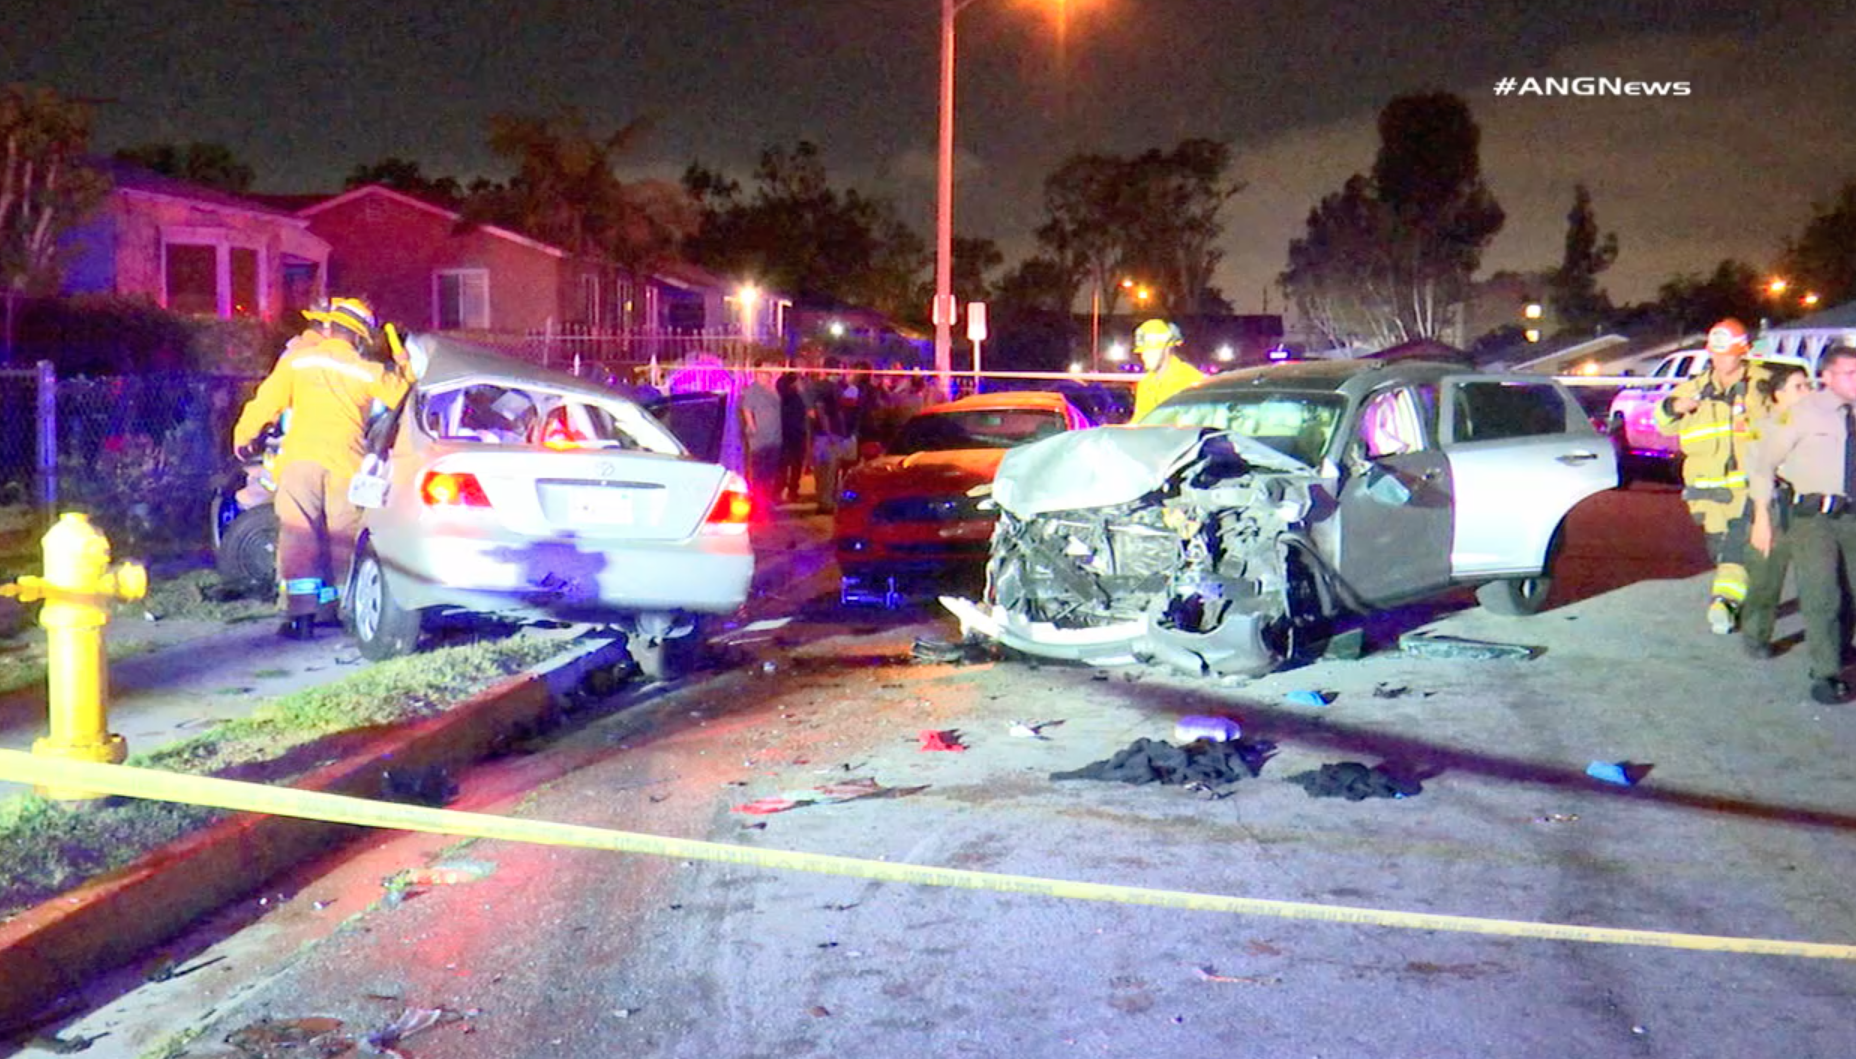 Officers assess two mangled vehicles that had collided in Willowbrook on May 11, 2019. (Credit: ANG News)